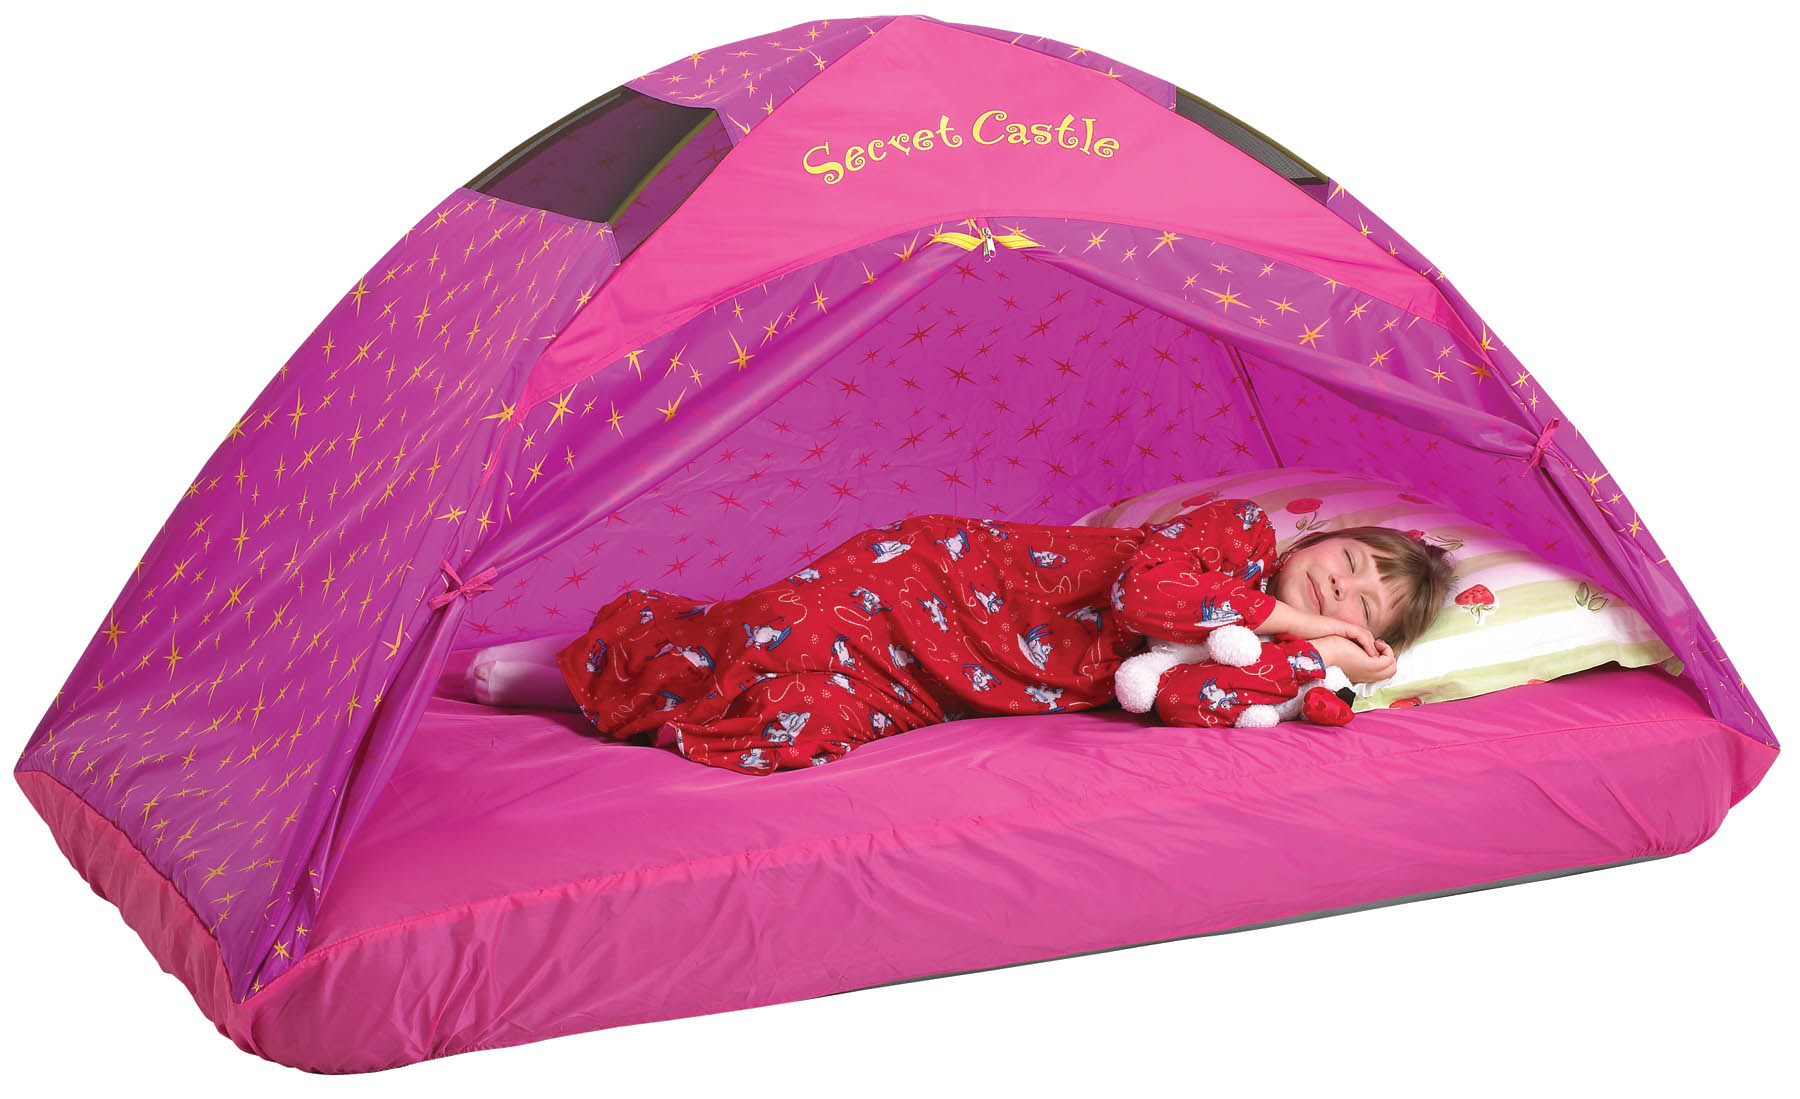 Pacific Play Tents Secret Castle Bed Play Tent